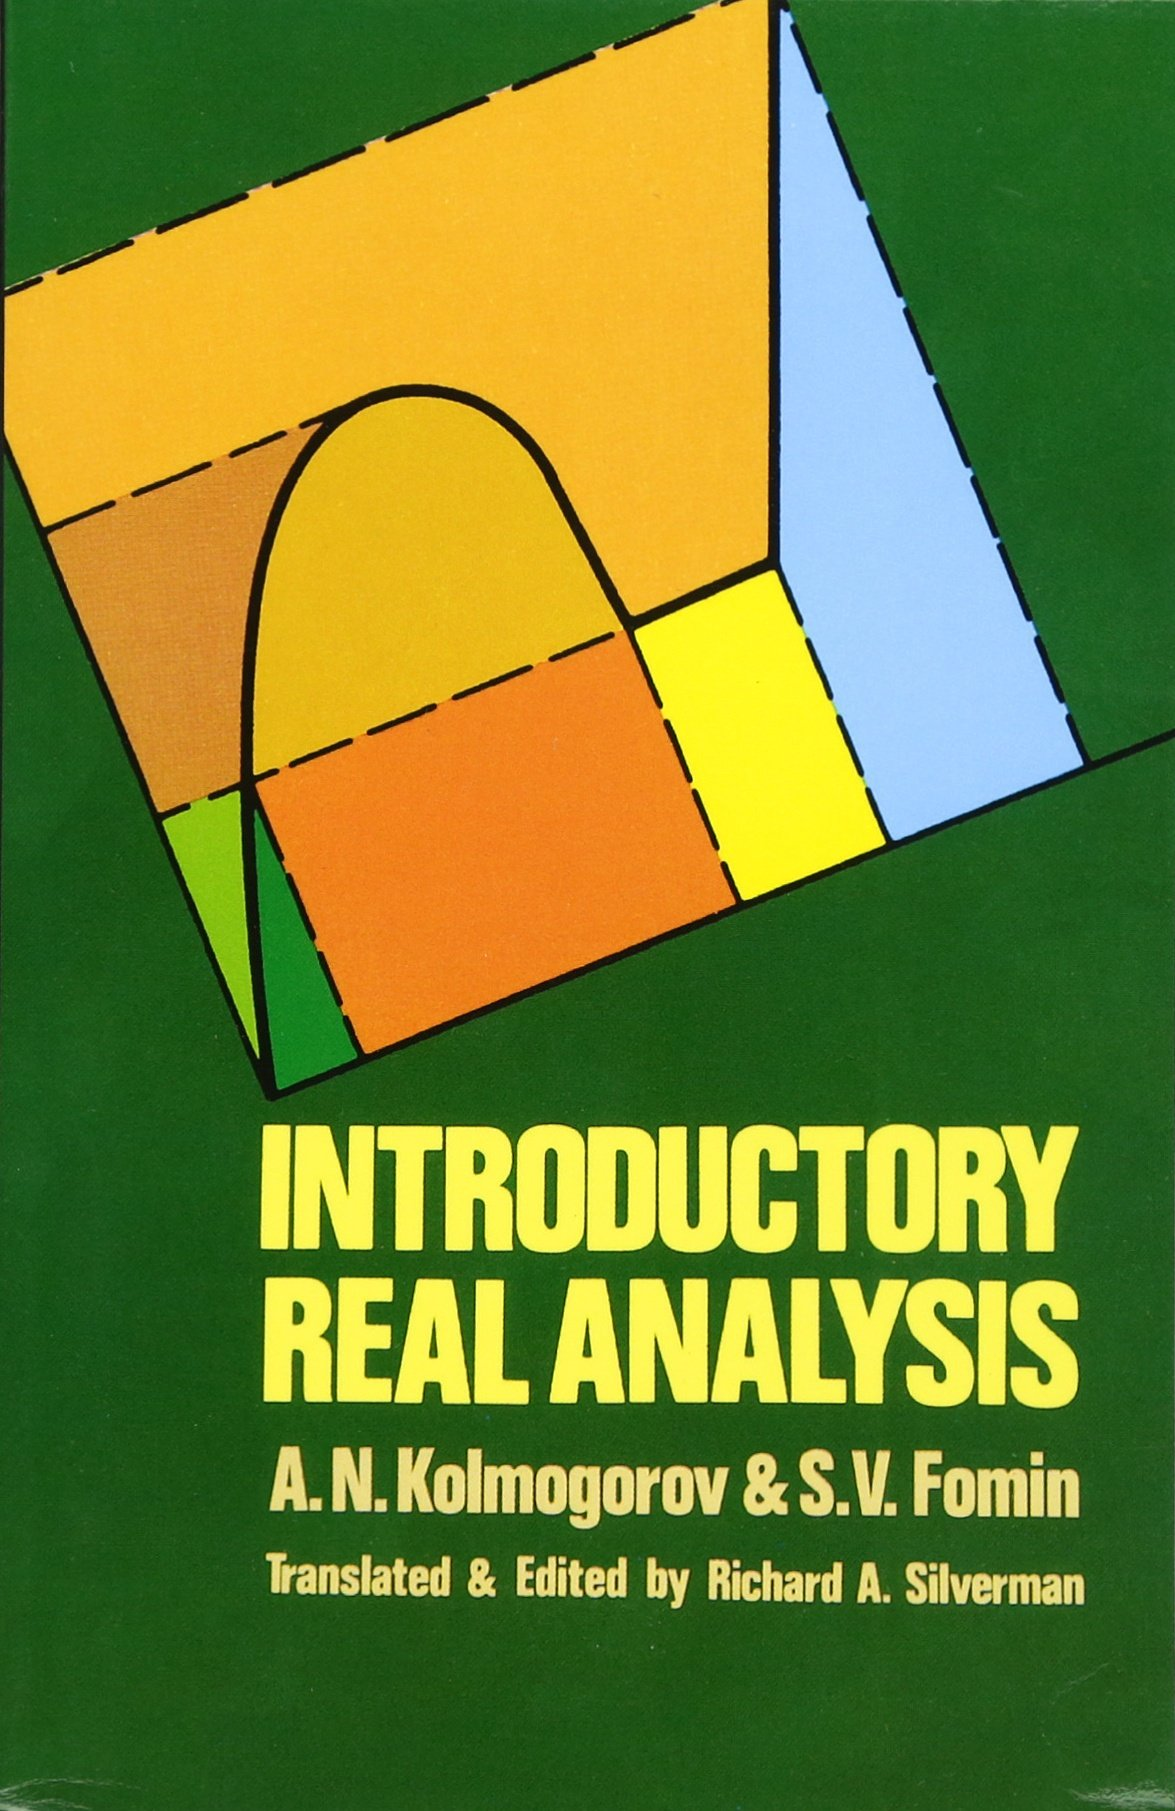 introductory real analysis s v fomin